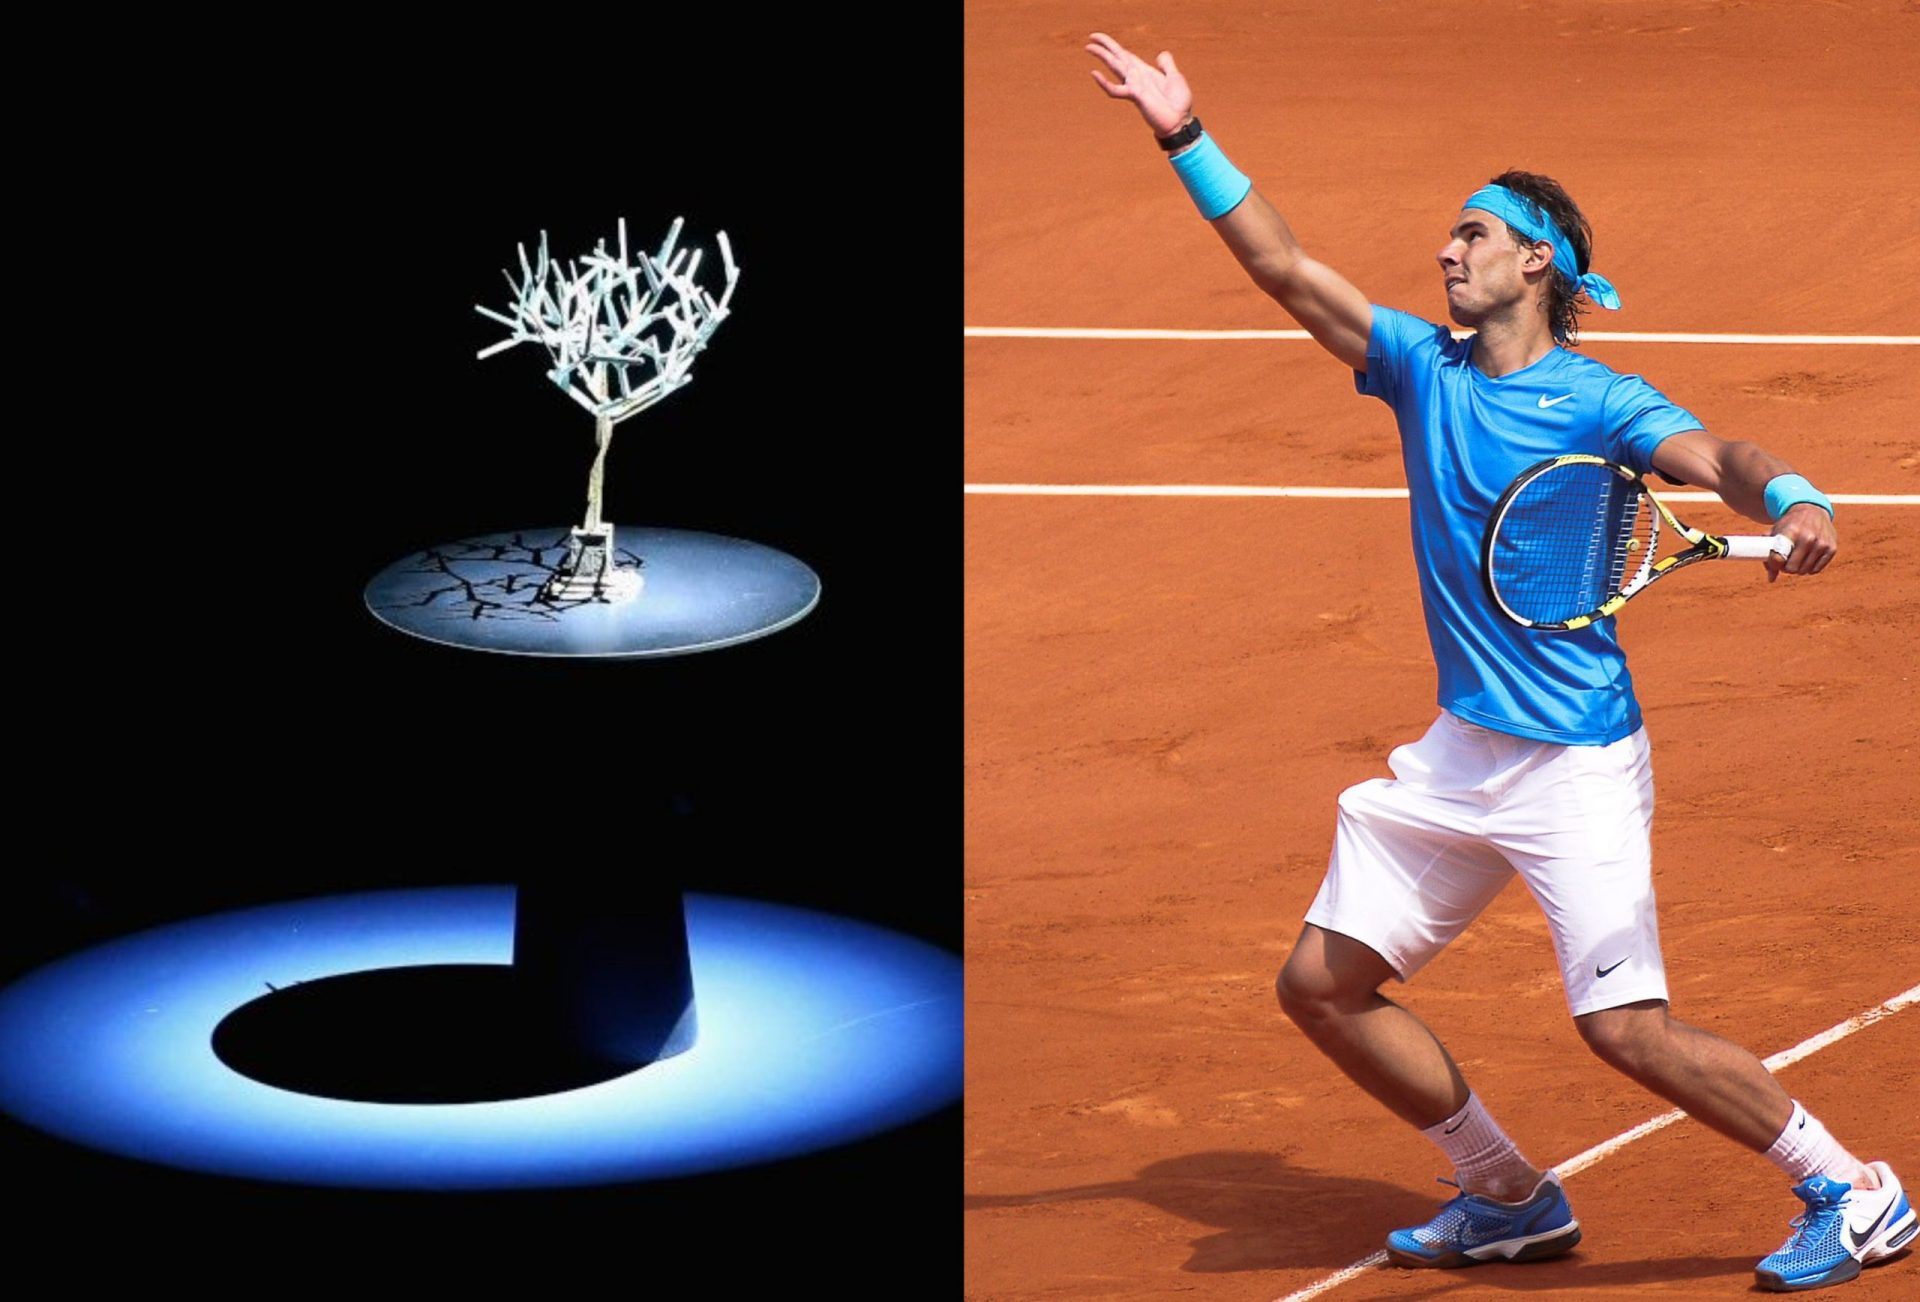 Nadal arrives in Paris aiming for the elusive Paris Masters trophy - THE SPORTS ROOM